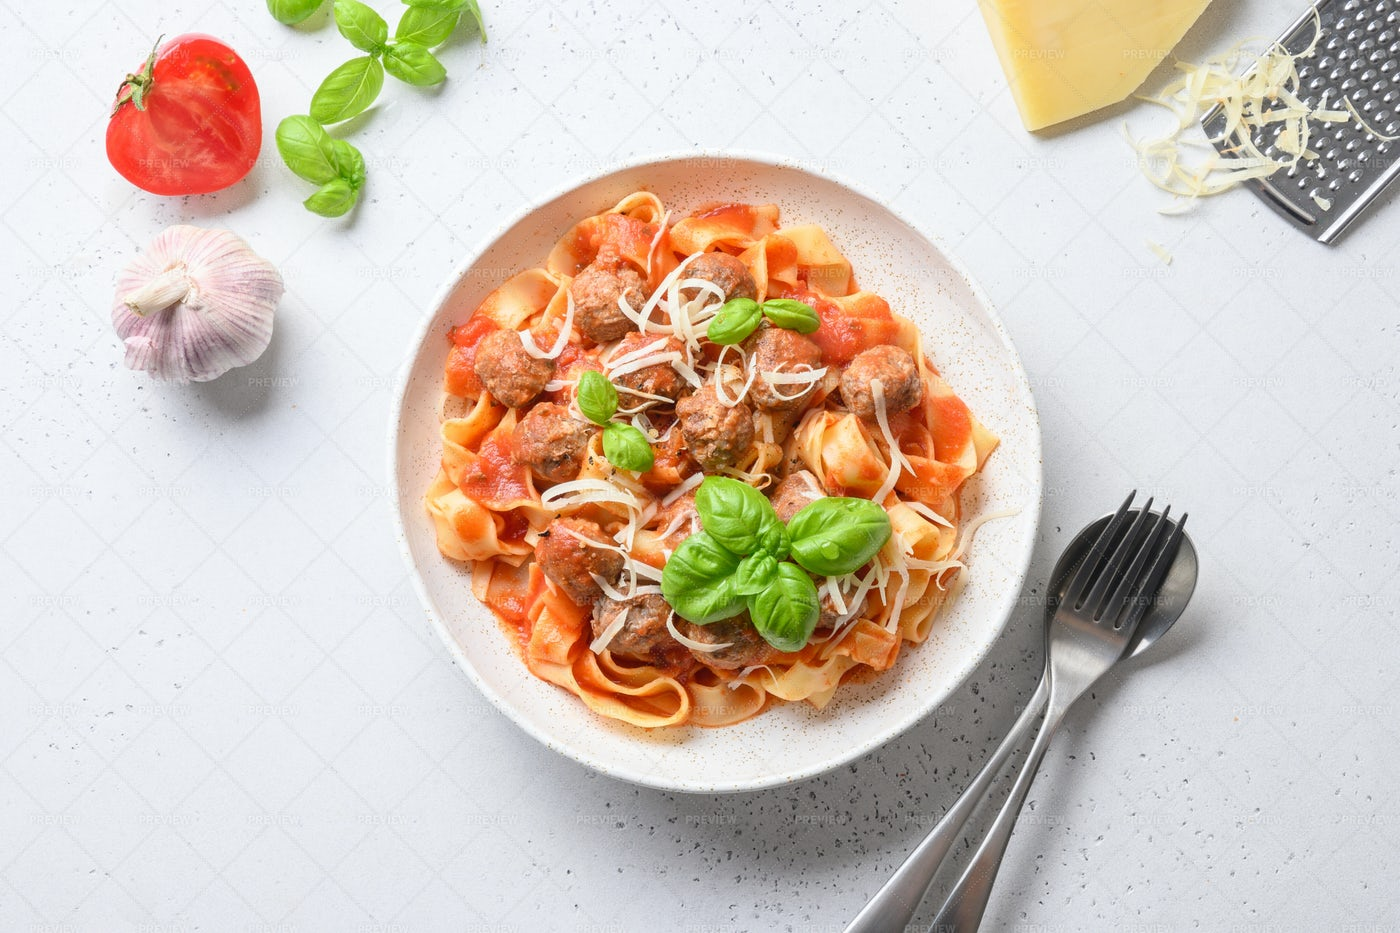 Plated Pasta With Meatballs: Stock Photos